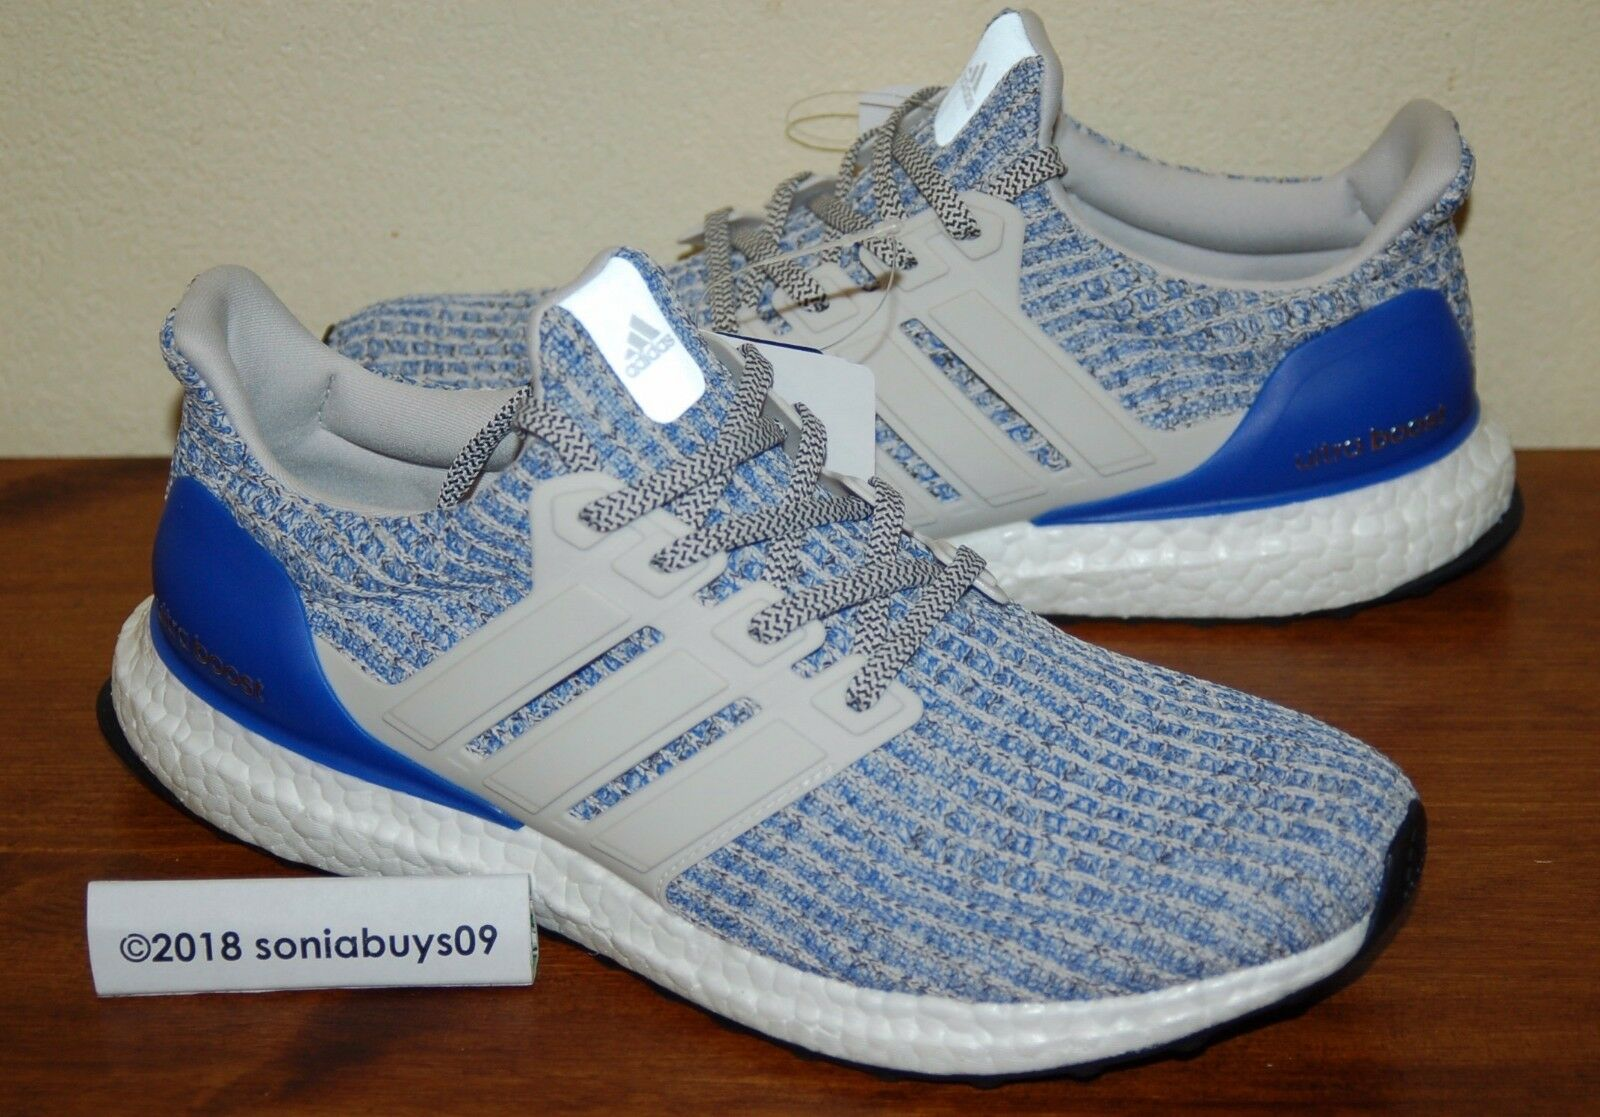 Adidas Men's Sample UltraBoost  Running shoes, CP9249, Chalk White, Size 9  quality guaranteed